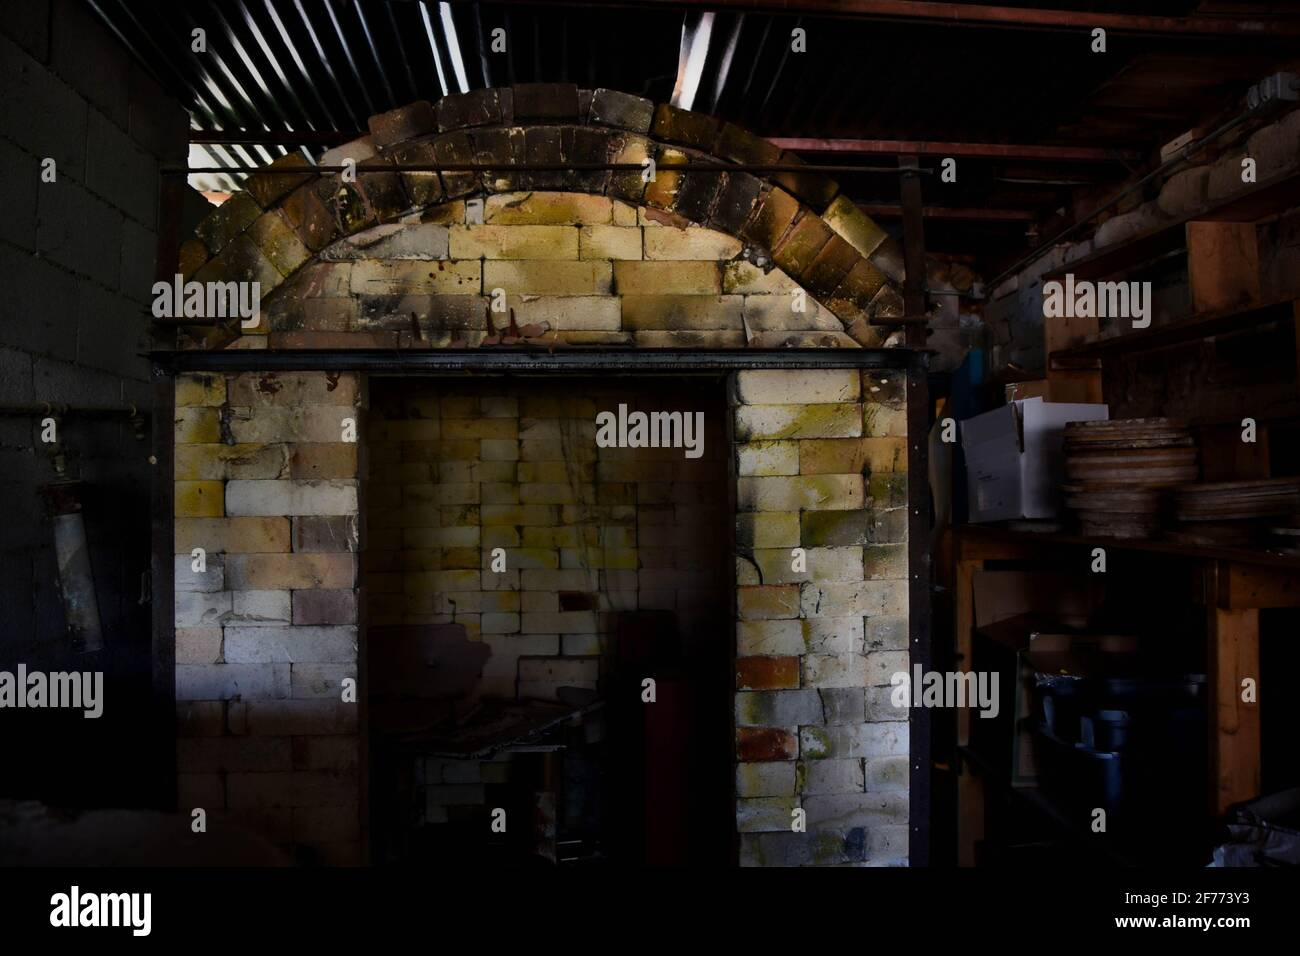 Abandoned pottery shed, looking into a kiln.  Creepy empty building. Stock Photo